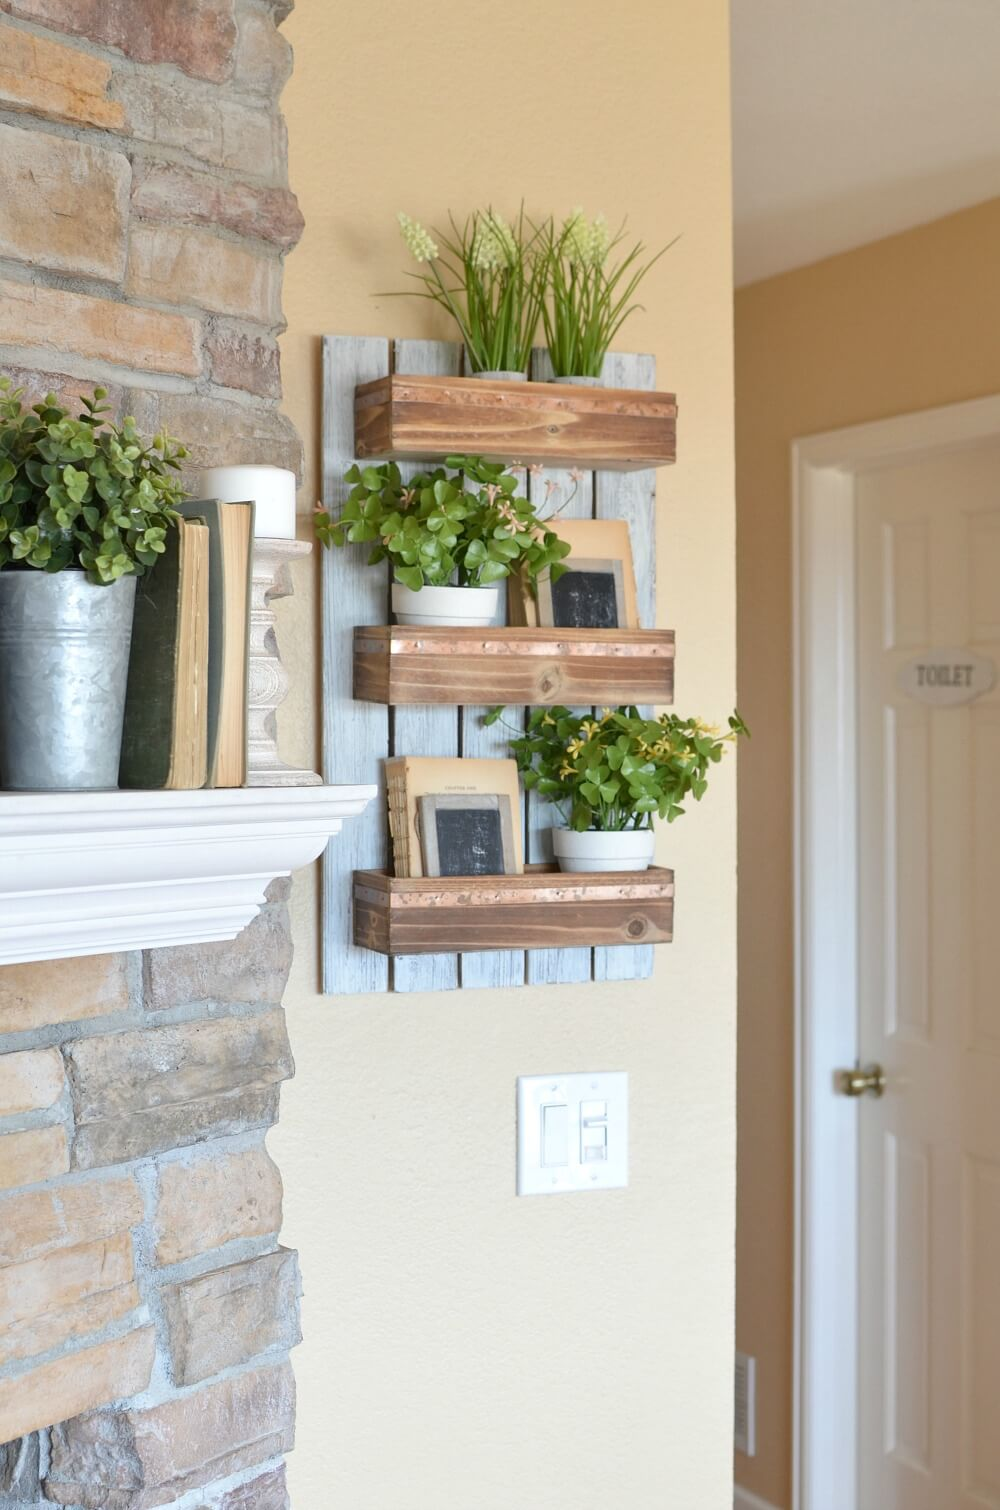 living room wooden ideas small traditional decorating 35 best farmhouse decor and designs for 2019 shelf